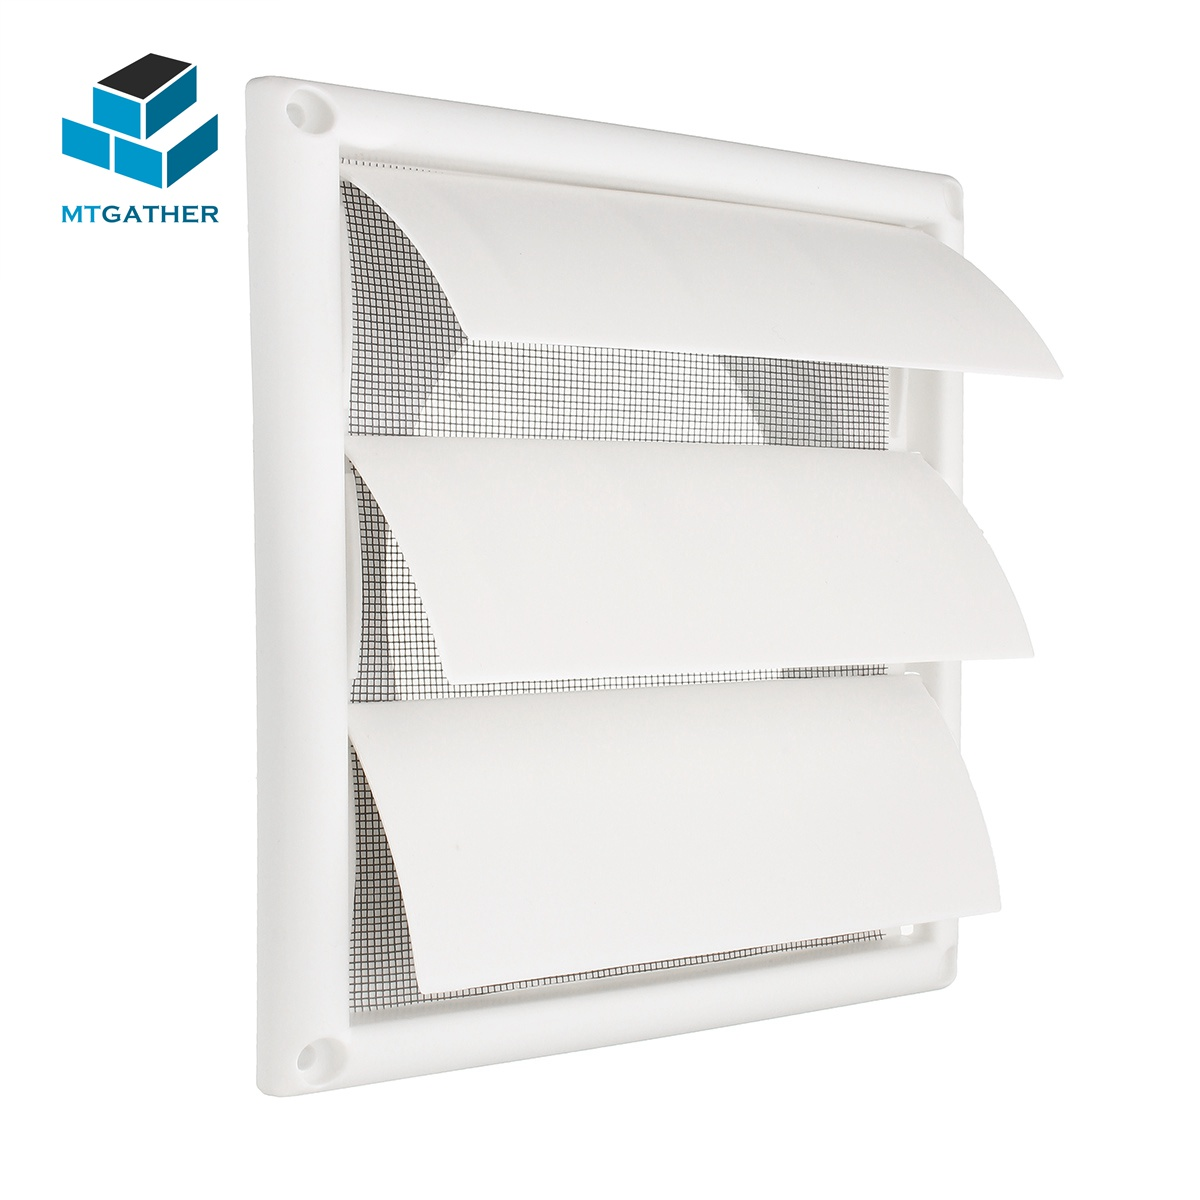 MTGATHER Air Vent Grille Ventilation Cover Plastic White Wall Grilles Duct 200x200x40mm Heating Cooling & Vents Vents vents 200x250